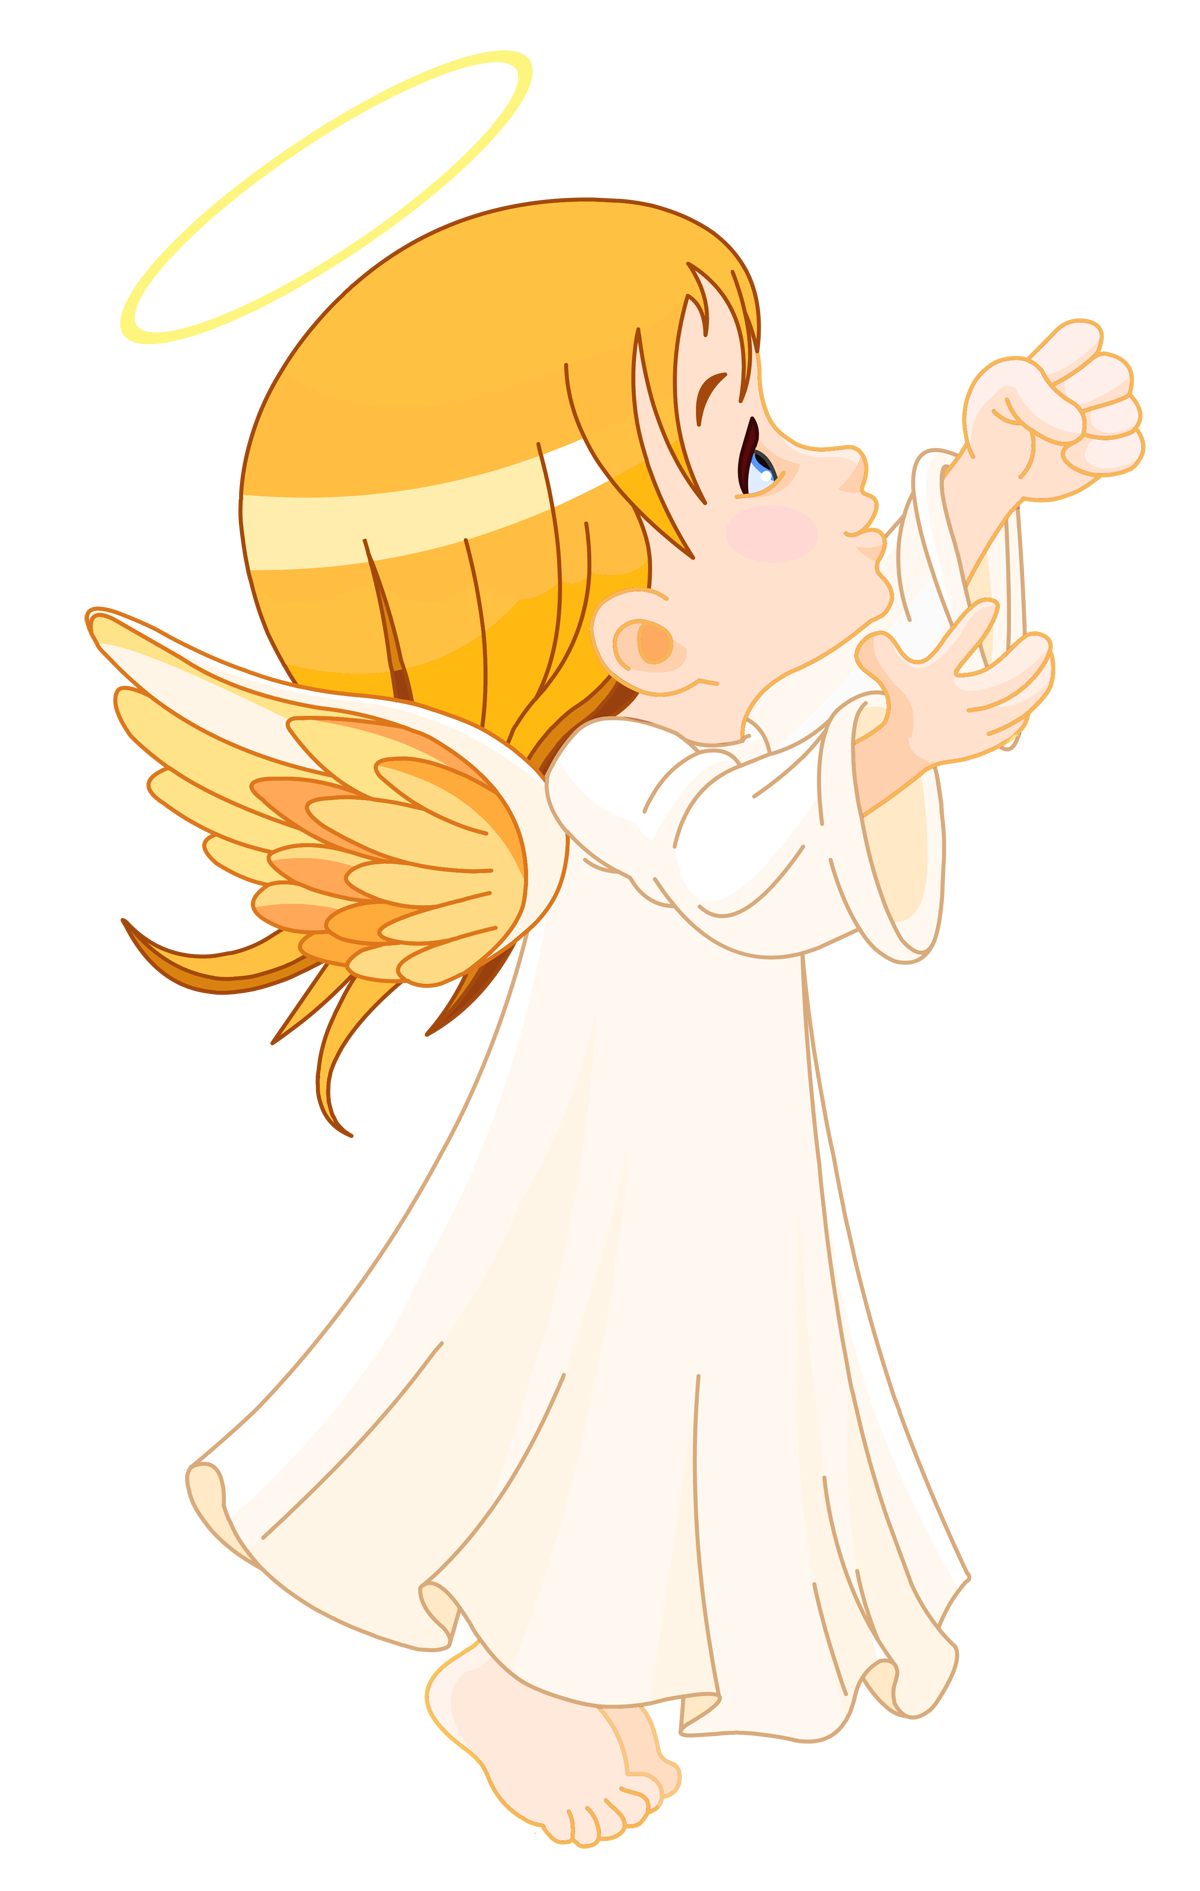 Cute Little Angel Large Size Png Clipart Angel Clipart Angel Illustration Angel Art